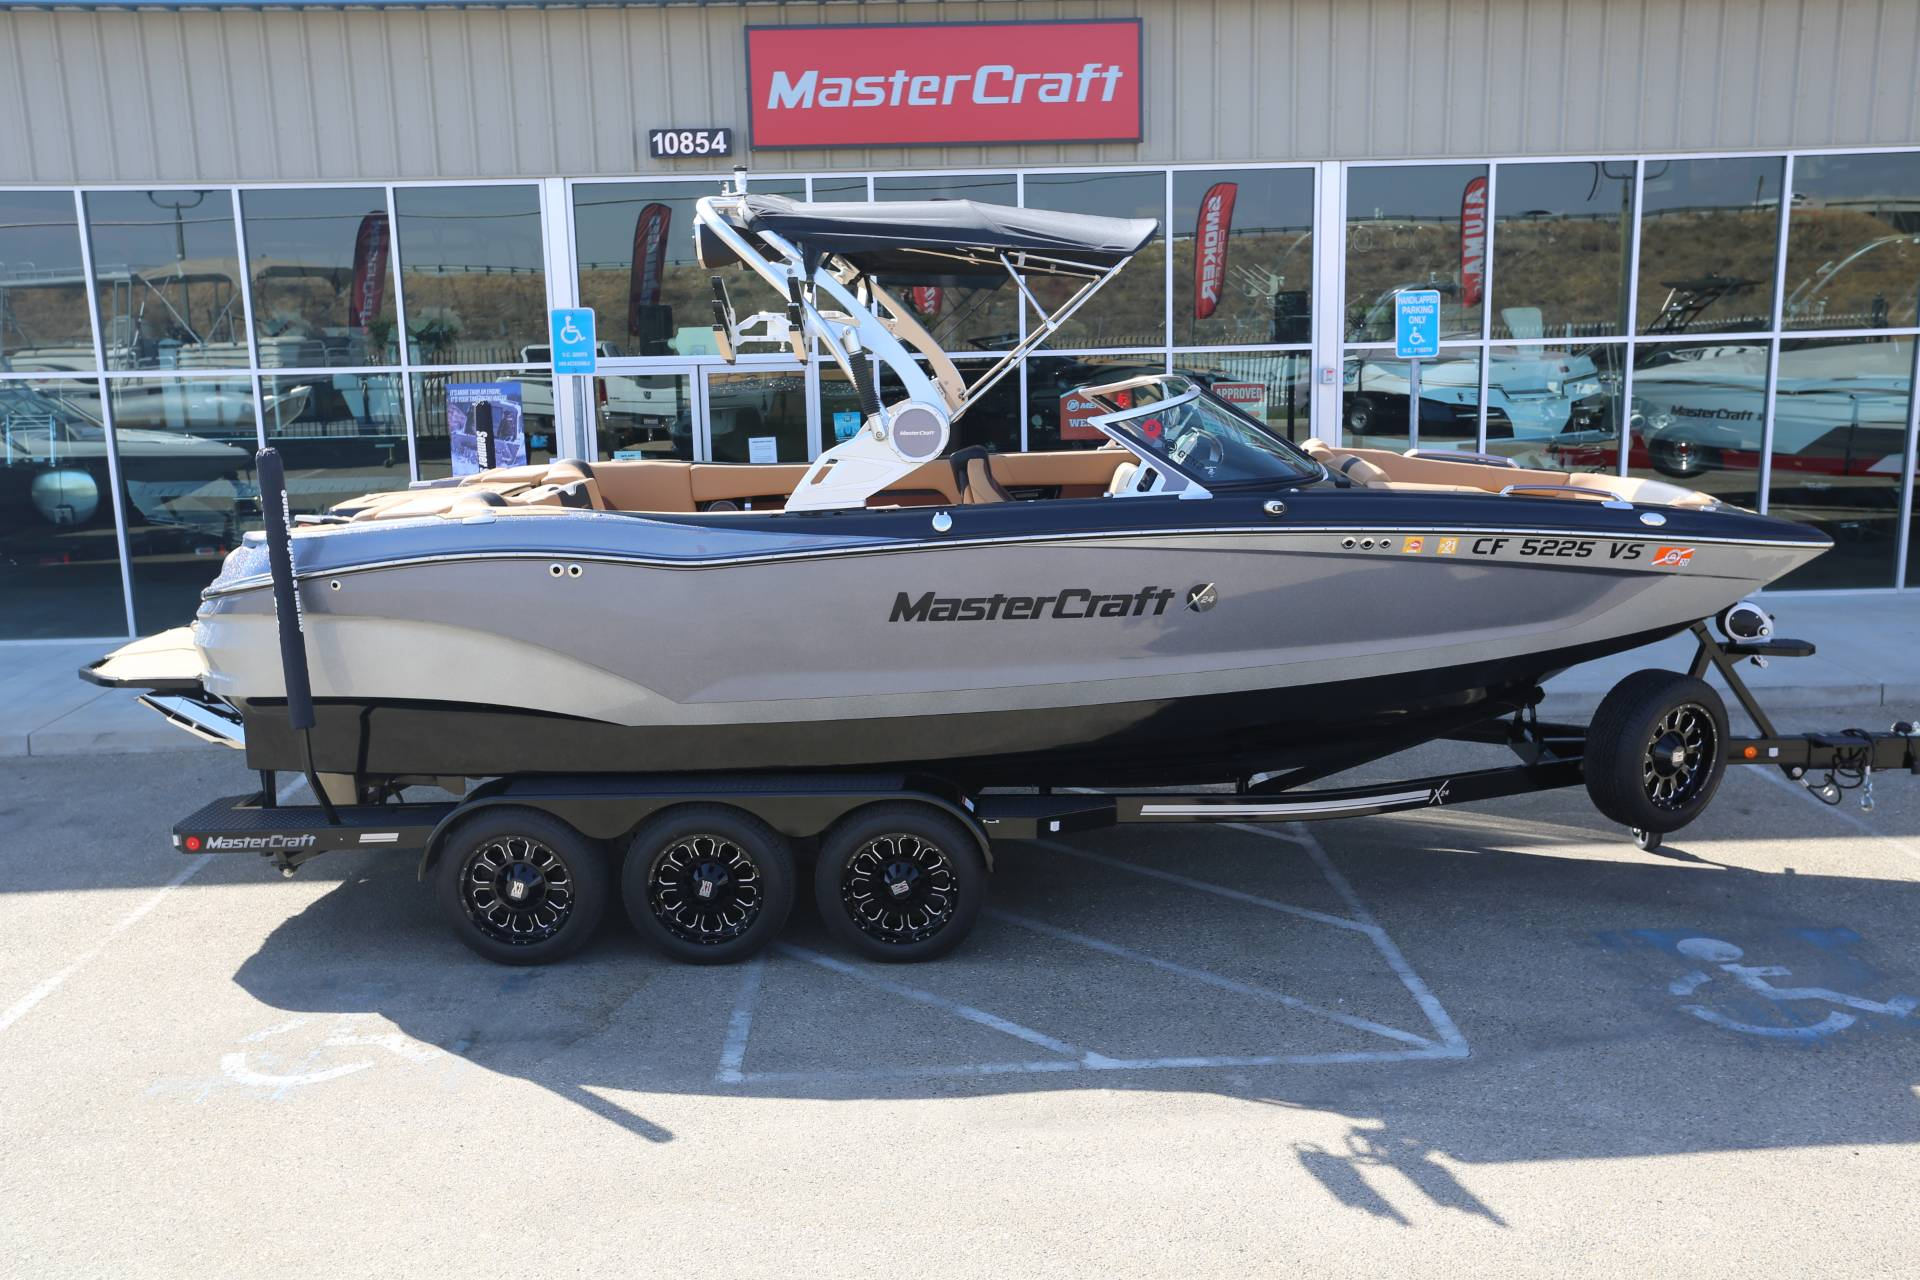 2019 Mastercraft X24 in Madera, California - Photo 20